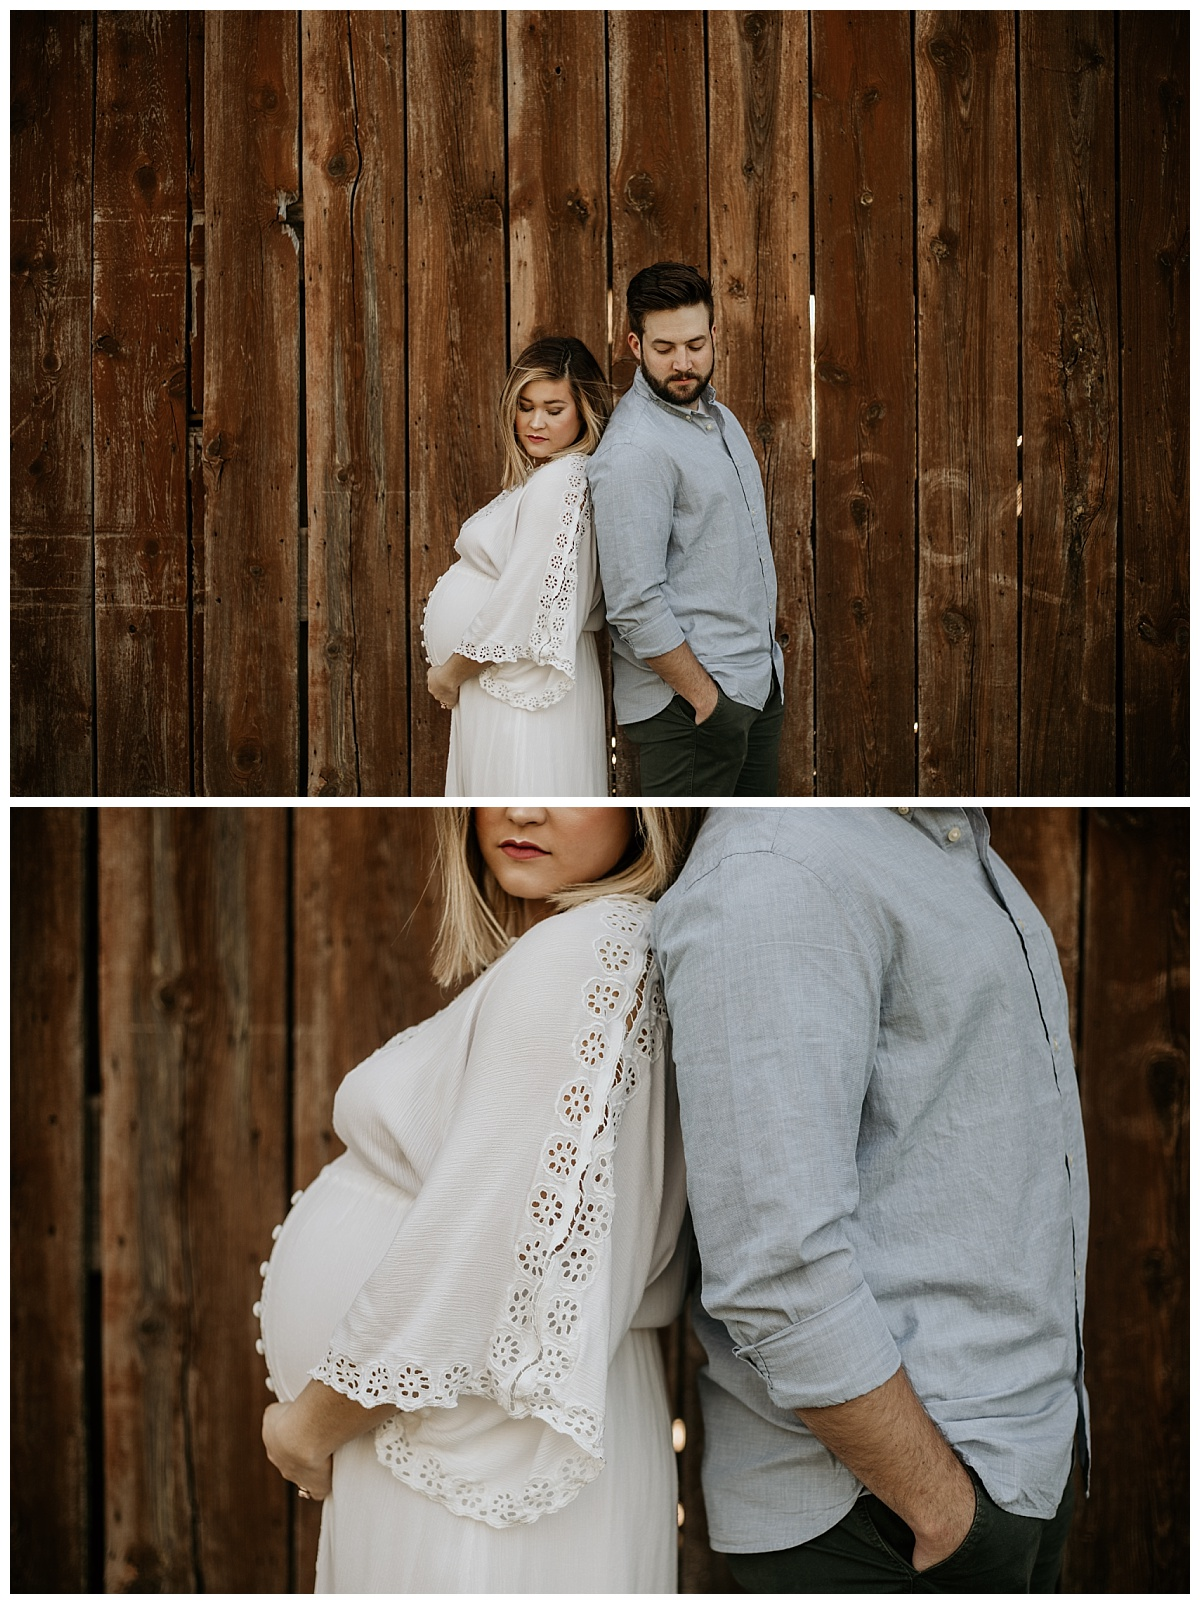 Kansas City Maternity Photography Kansas City Family Photography